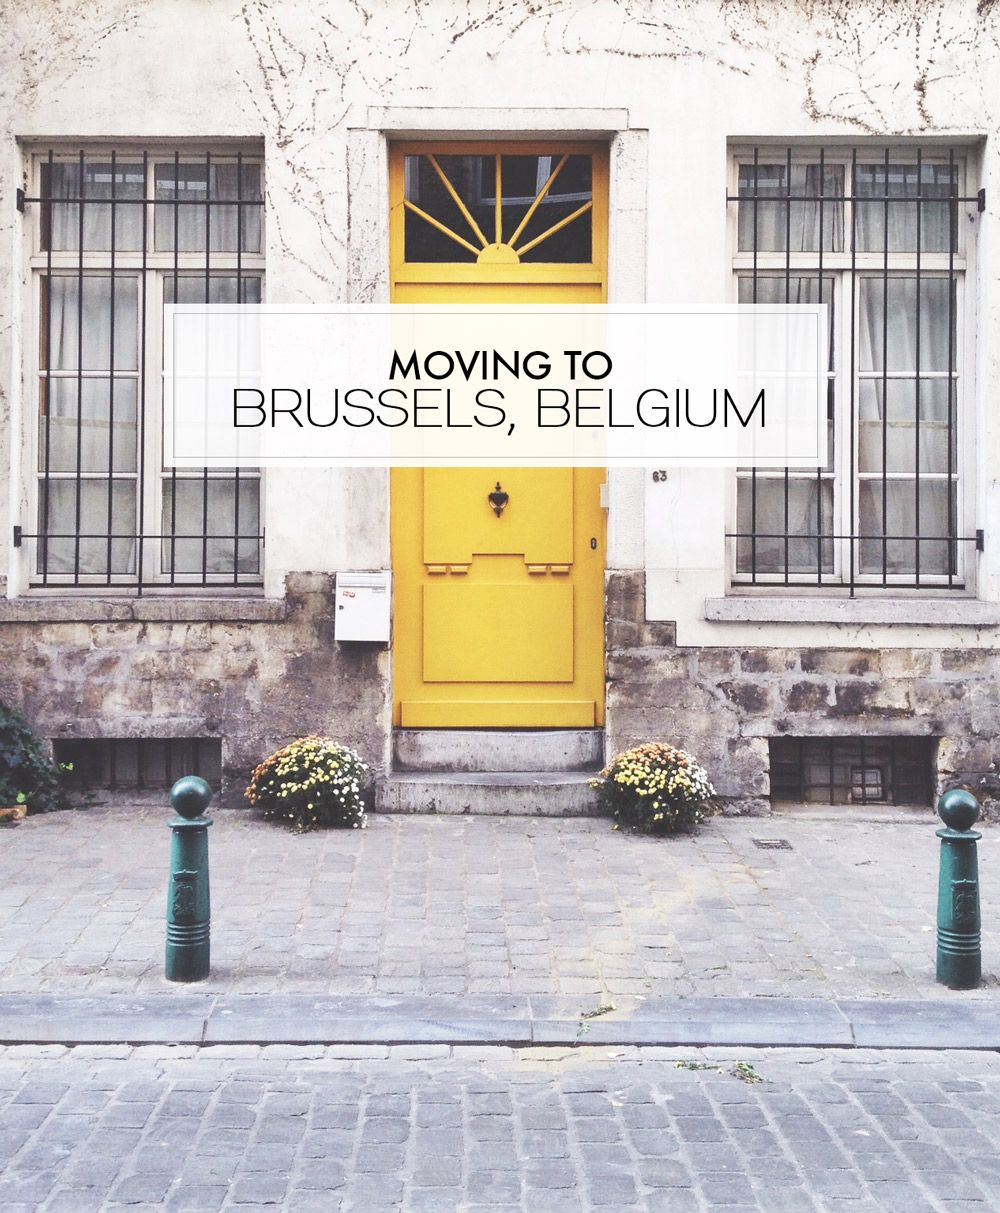 Moving to Brussels, Belgium | The start of MontgomeryFest